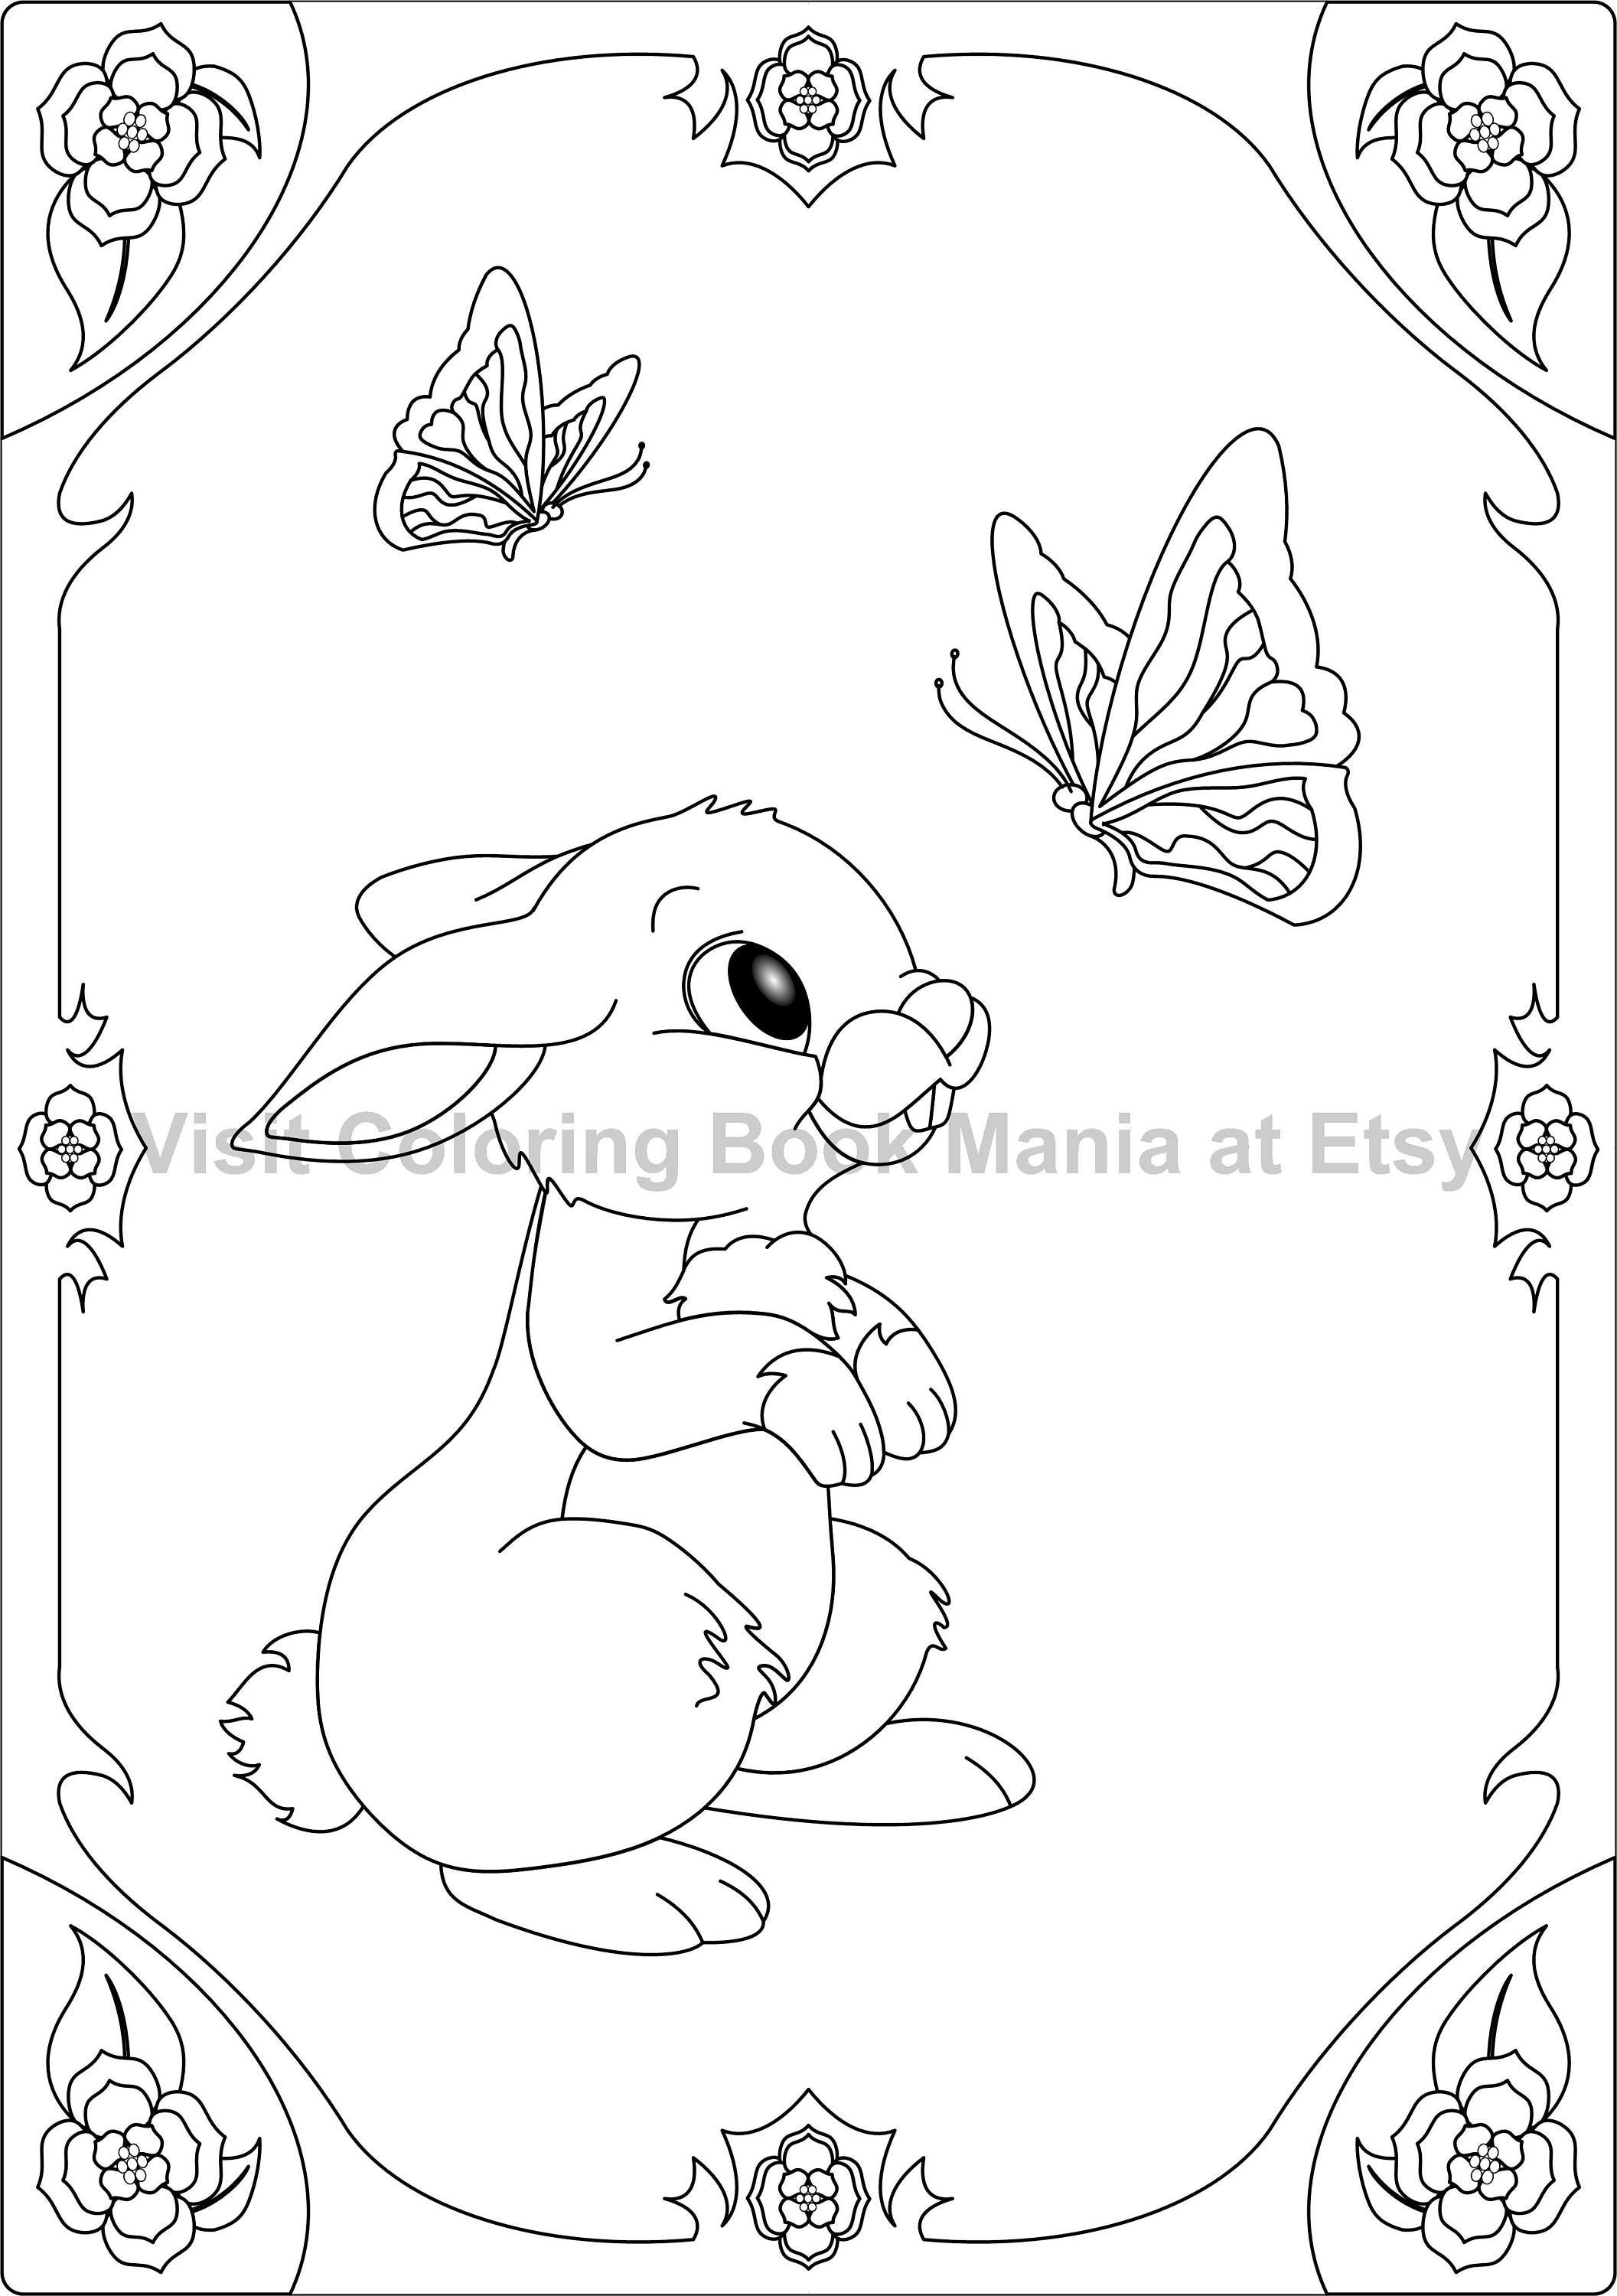 The coloring book of cards and envelopes flowers and butterflies - Nothing Cuter Than A Pair Of Rabbits 4 Note Cards To Color Matched Set Of Rabbits With Butterflies And Flowers 4 Cards With Envelopes